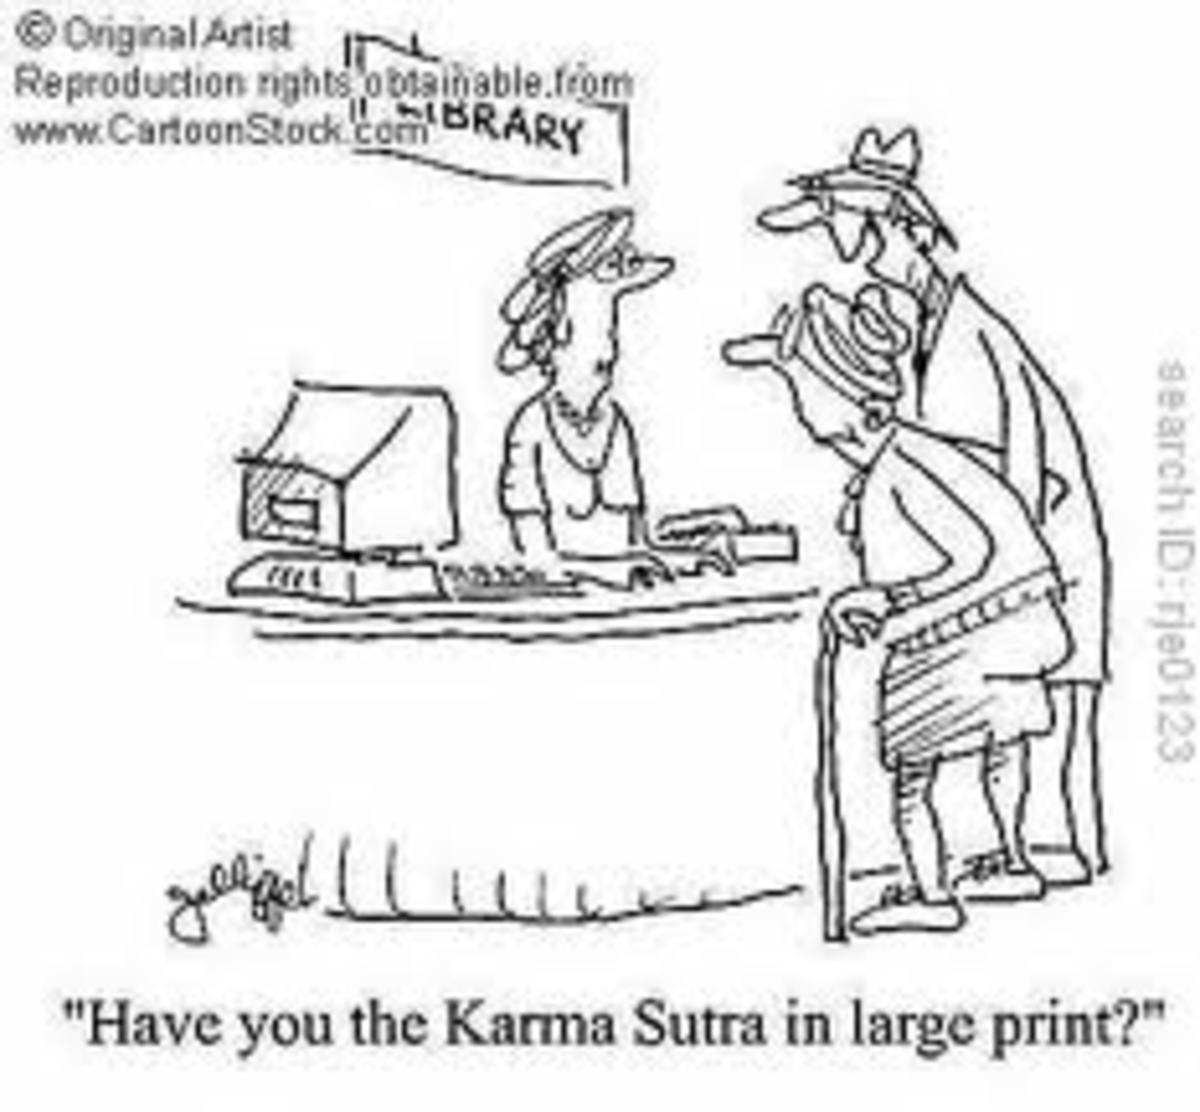 Found 'The KAMA Sutra,' too, when searching for KARMA